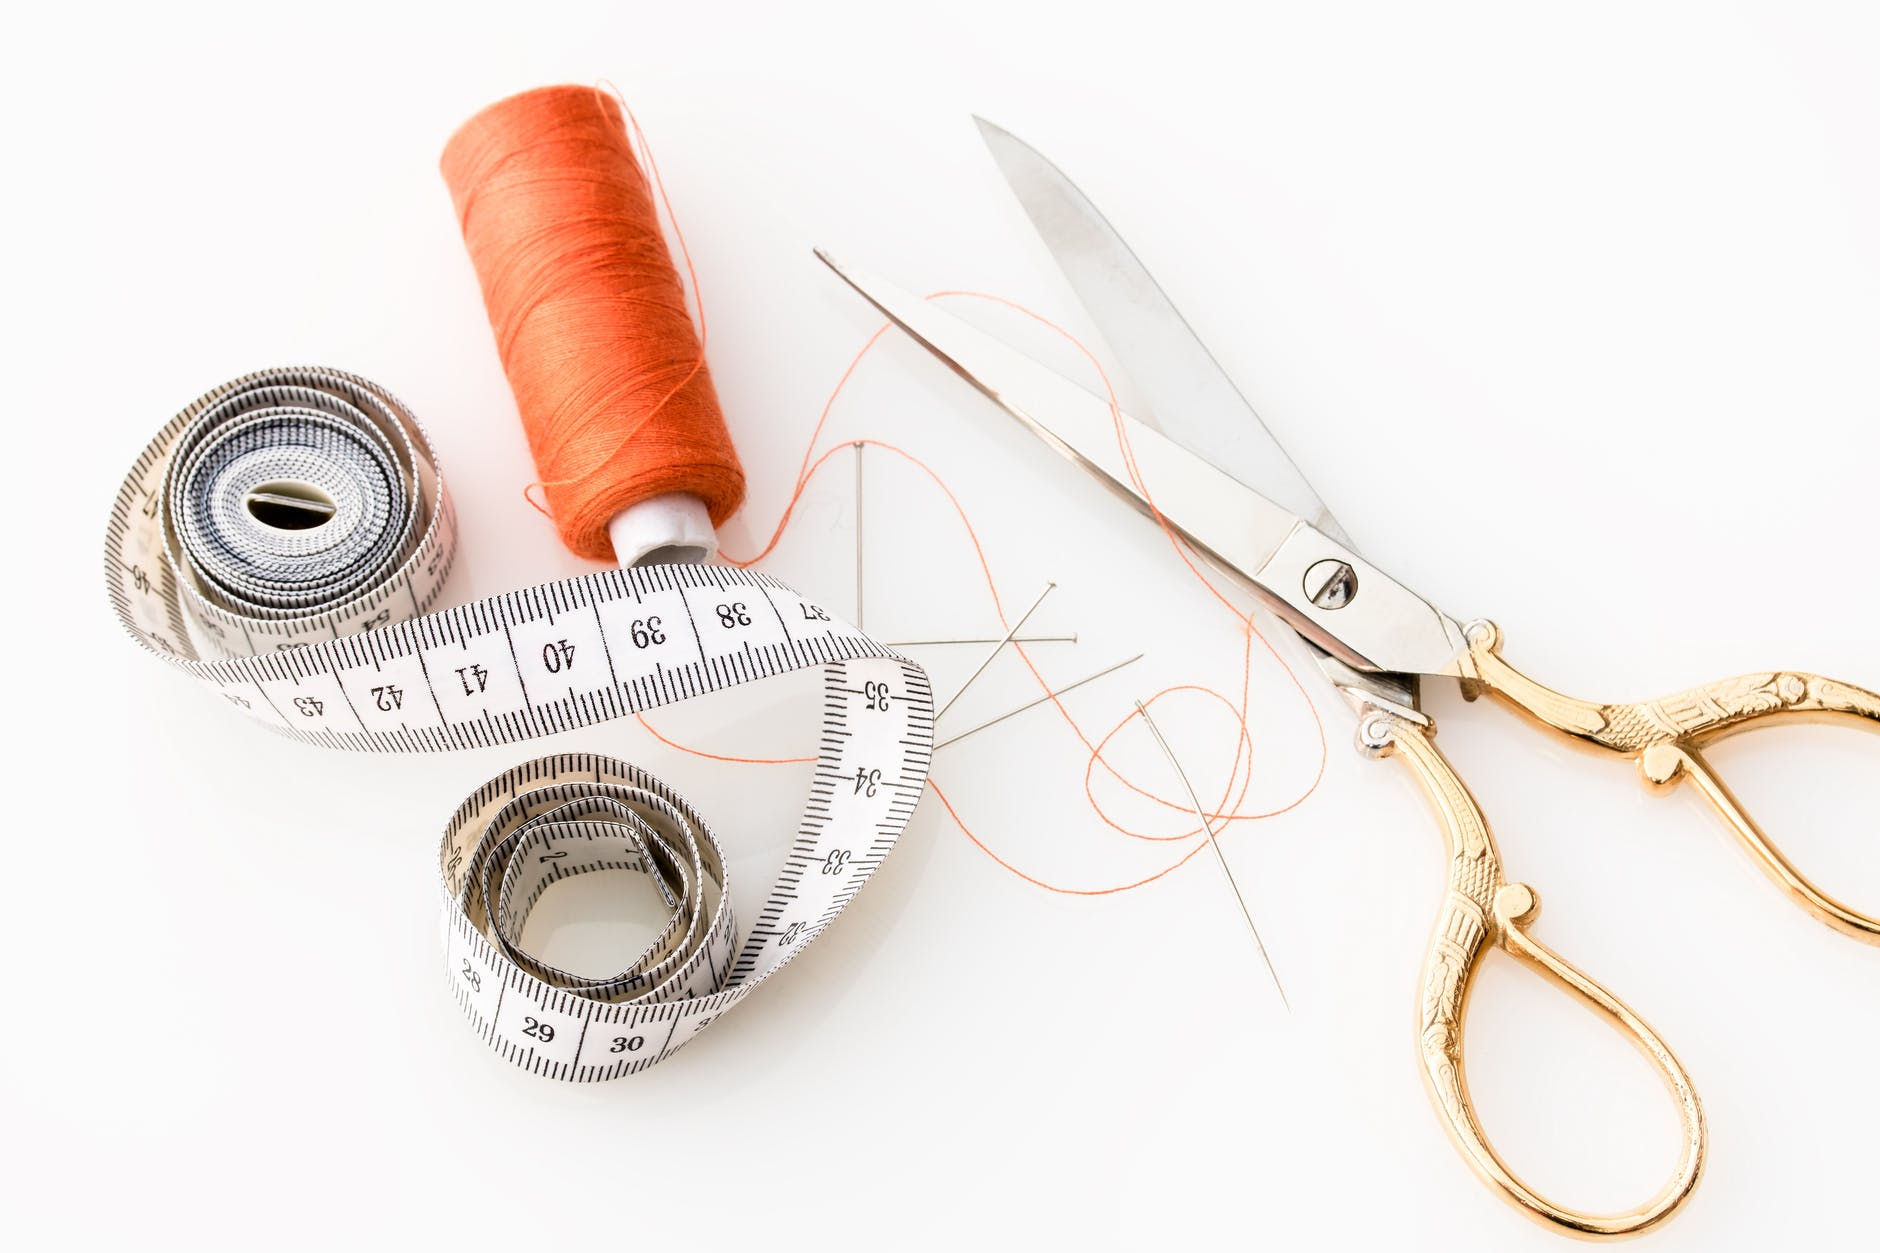 8. You Can Now Cover That Tear Fashionably | Great Reasons Why Learning How To Sew Is Pure Happiness